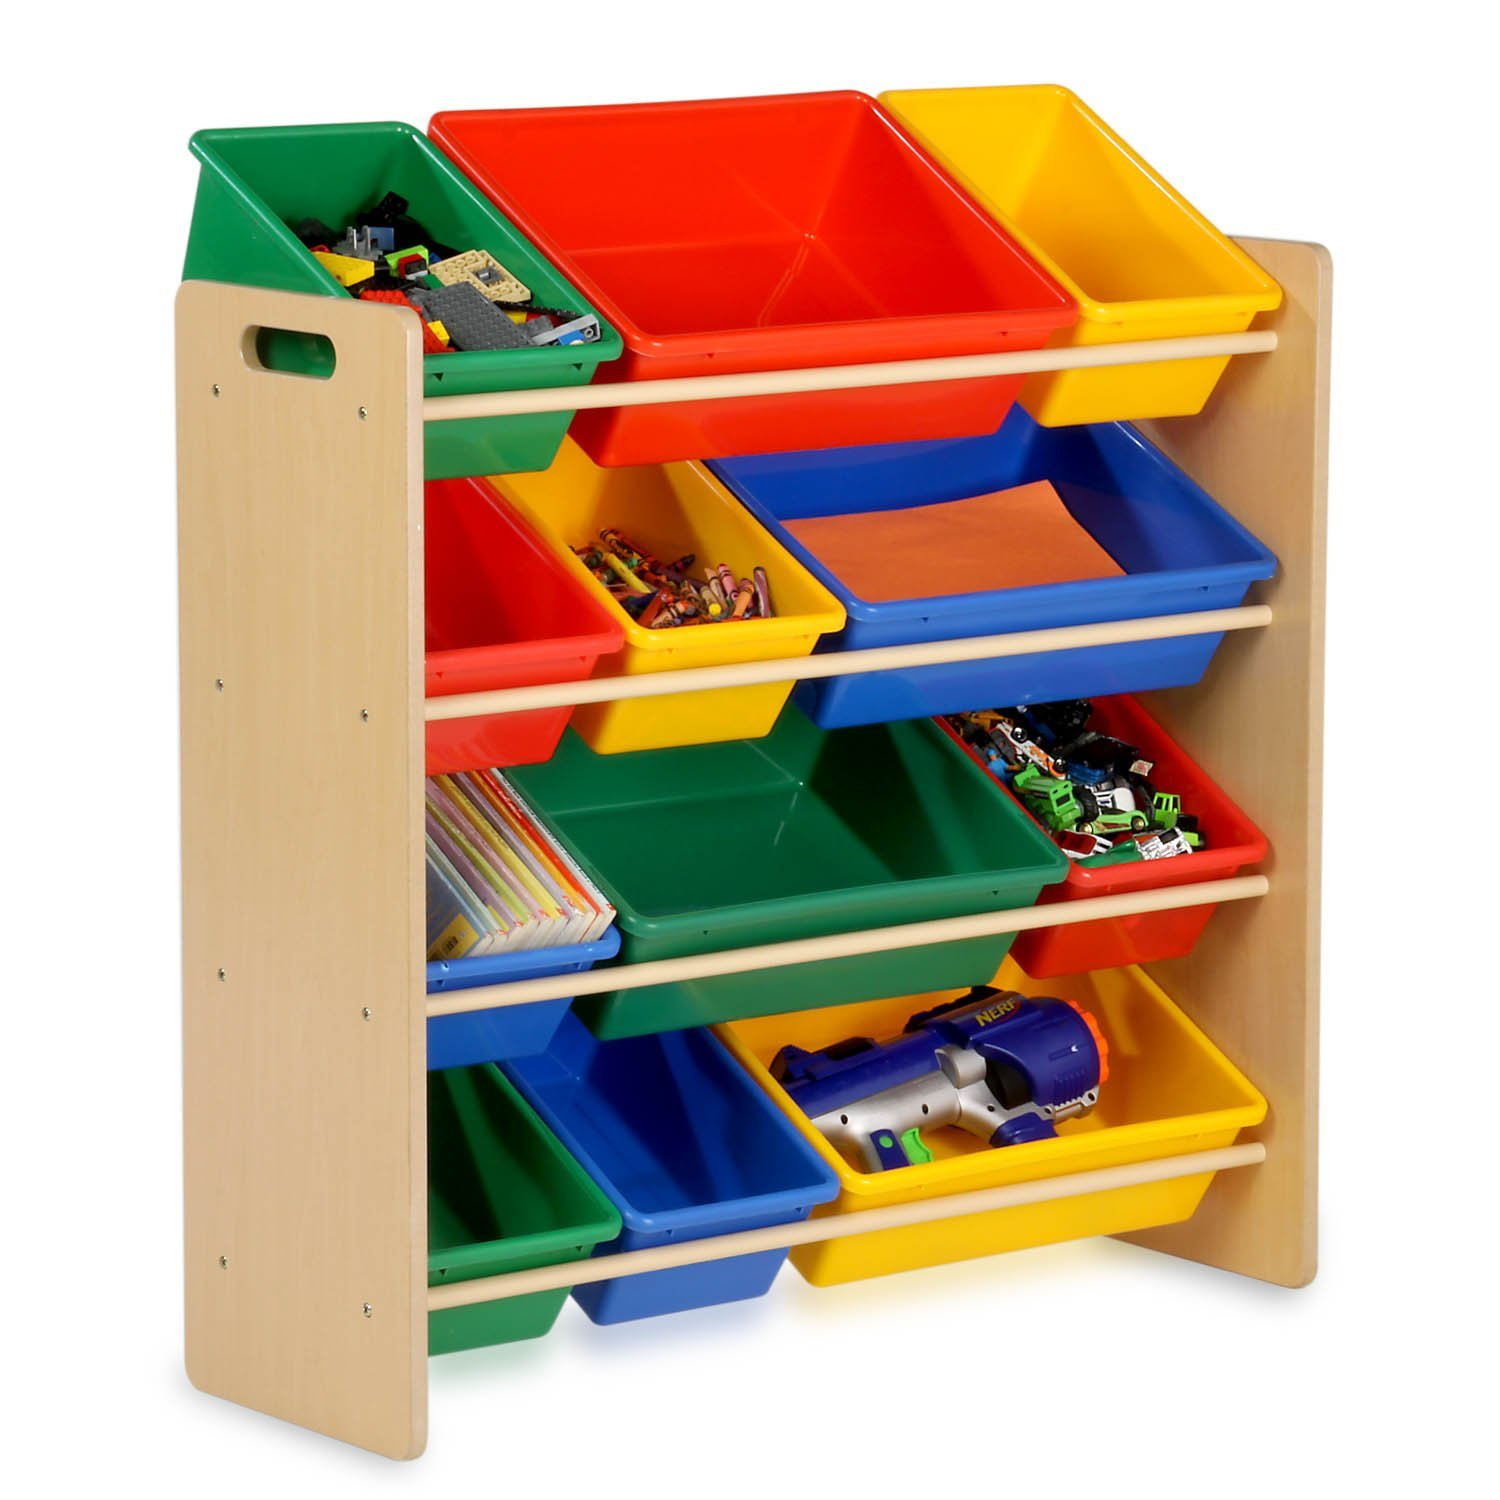 What Kind Of Toy Storage Works For Small Spaces?